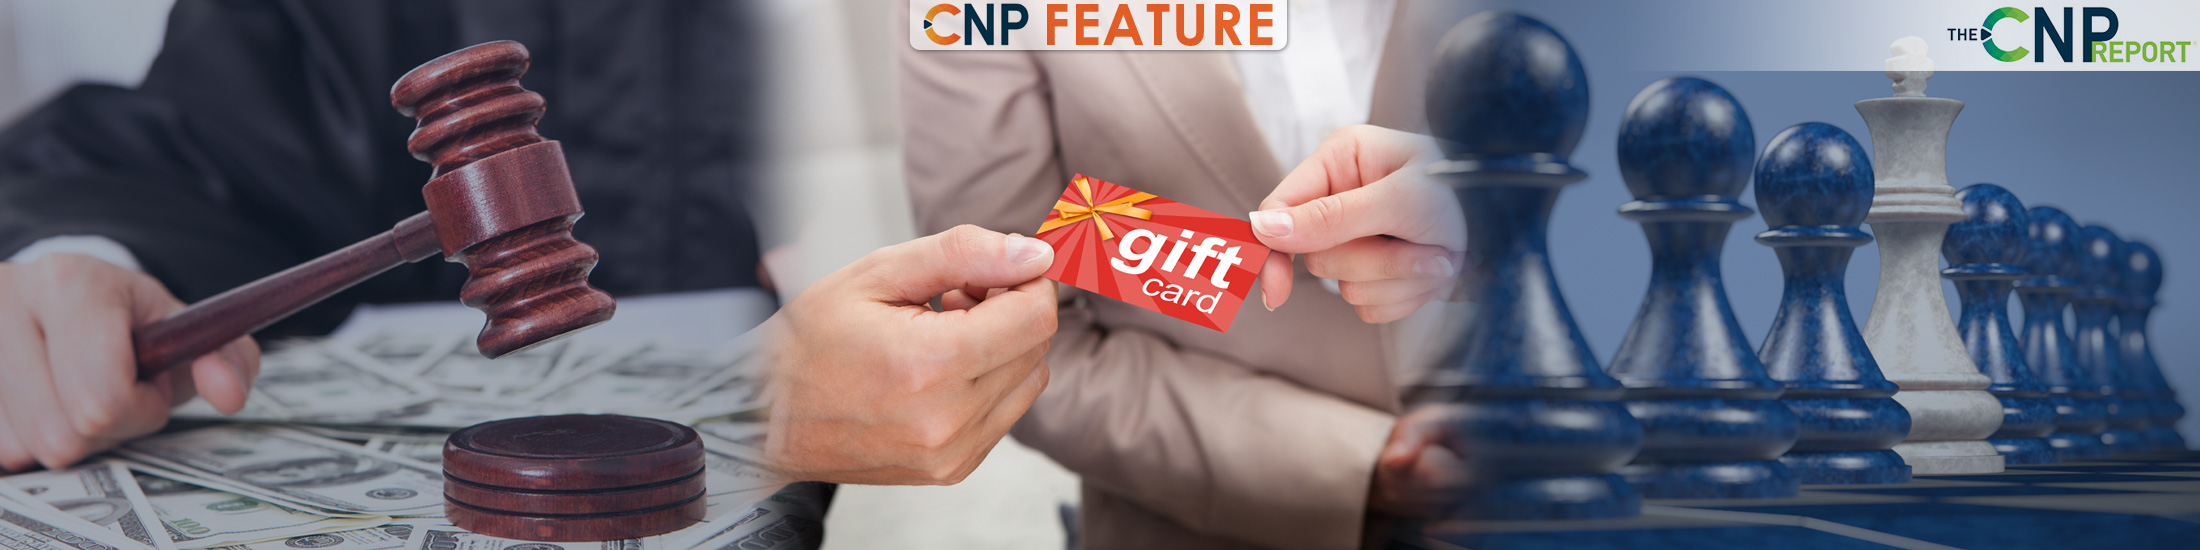 The Onus of E-Gift Card Fraud Mitigation Falls on Retailers and Consumers